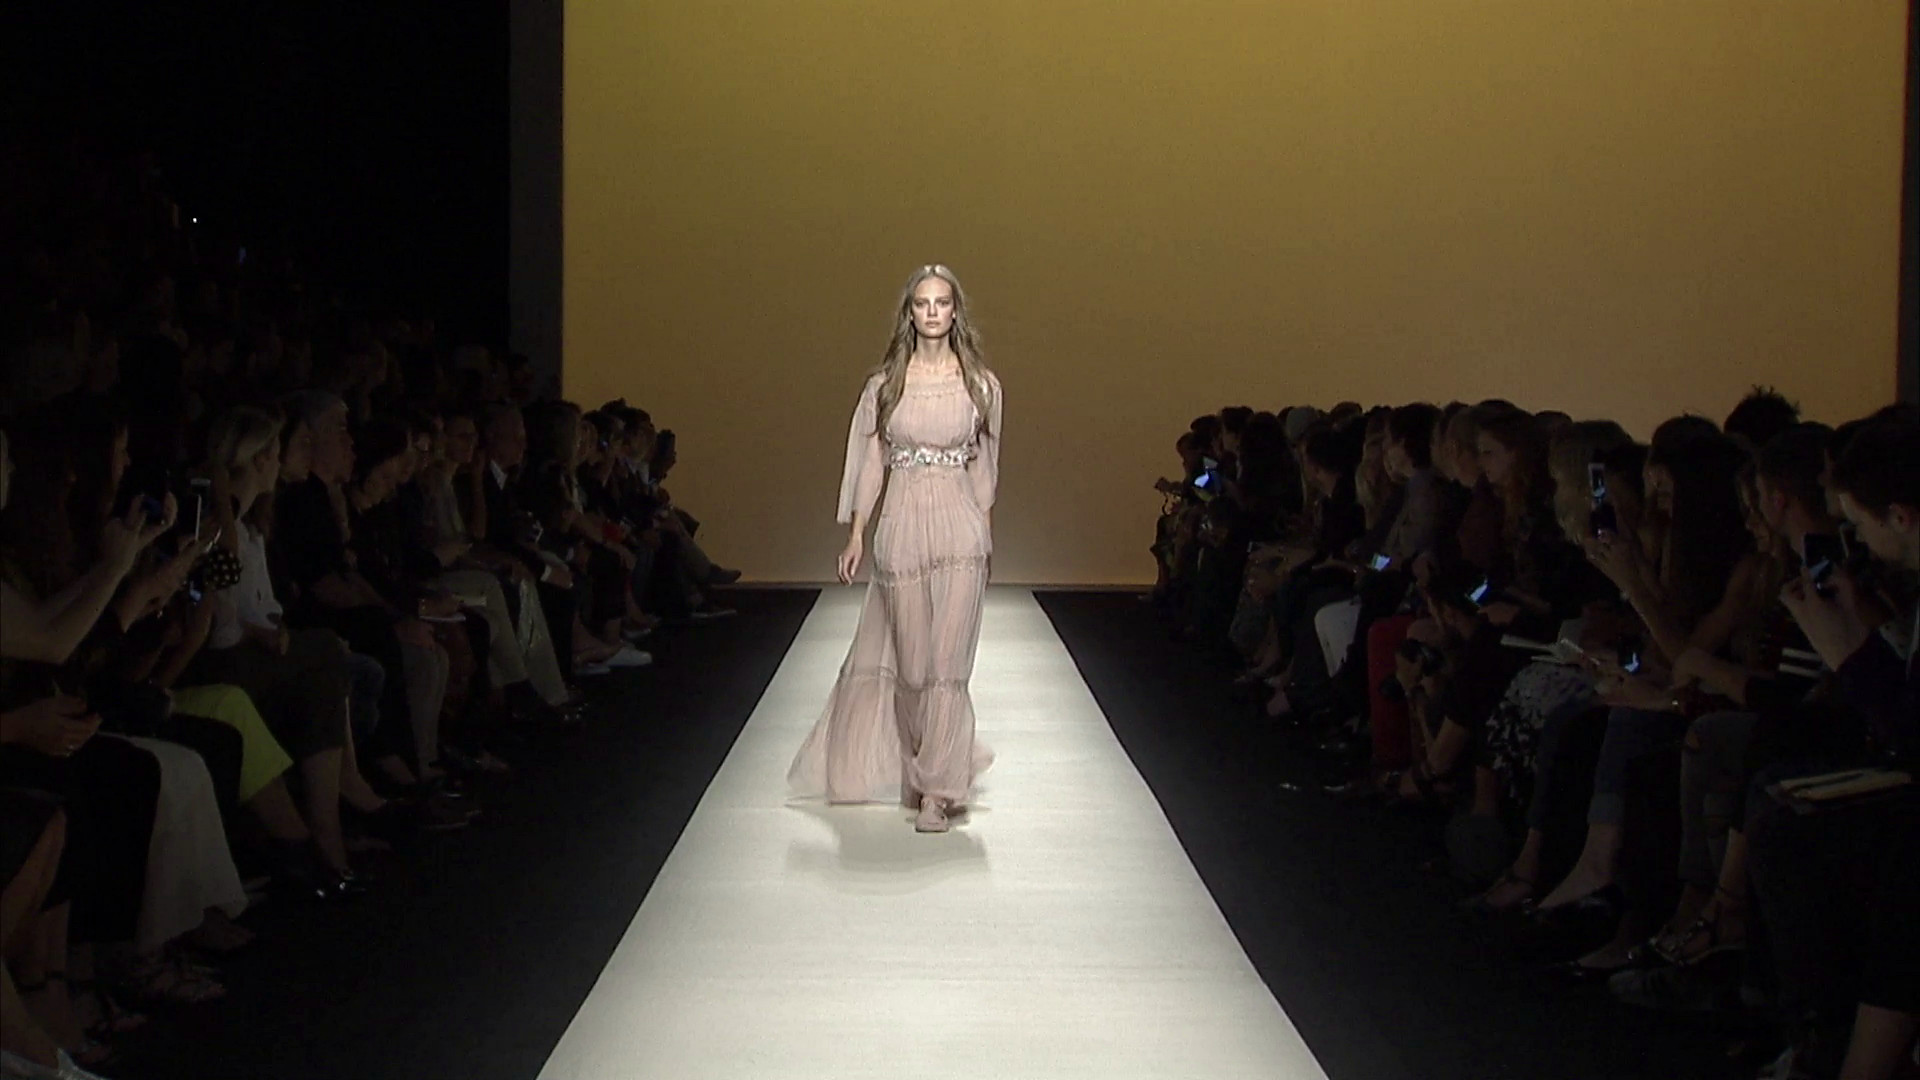 Alberta Ferretti Spring Summer 2015 Women's Fashion Show - Milan Fashion Week